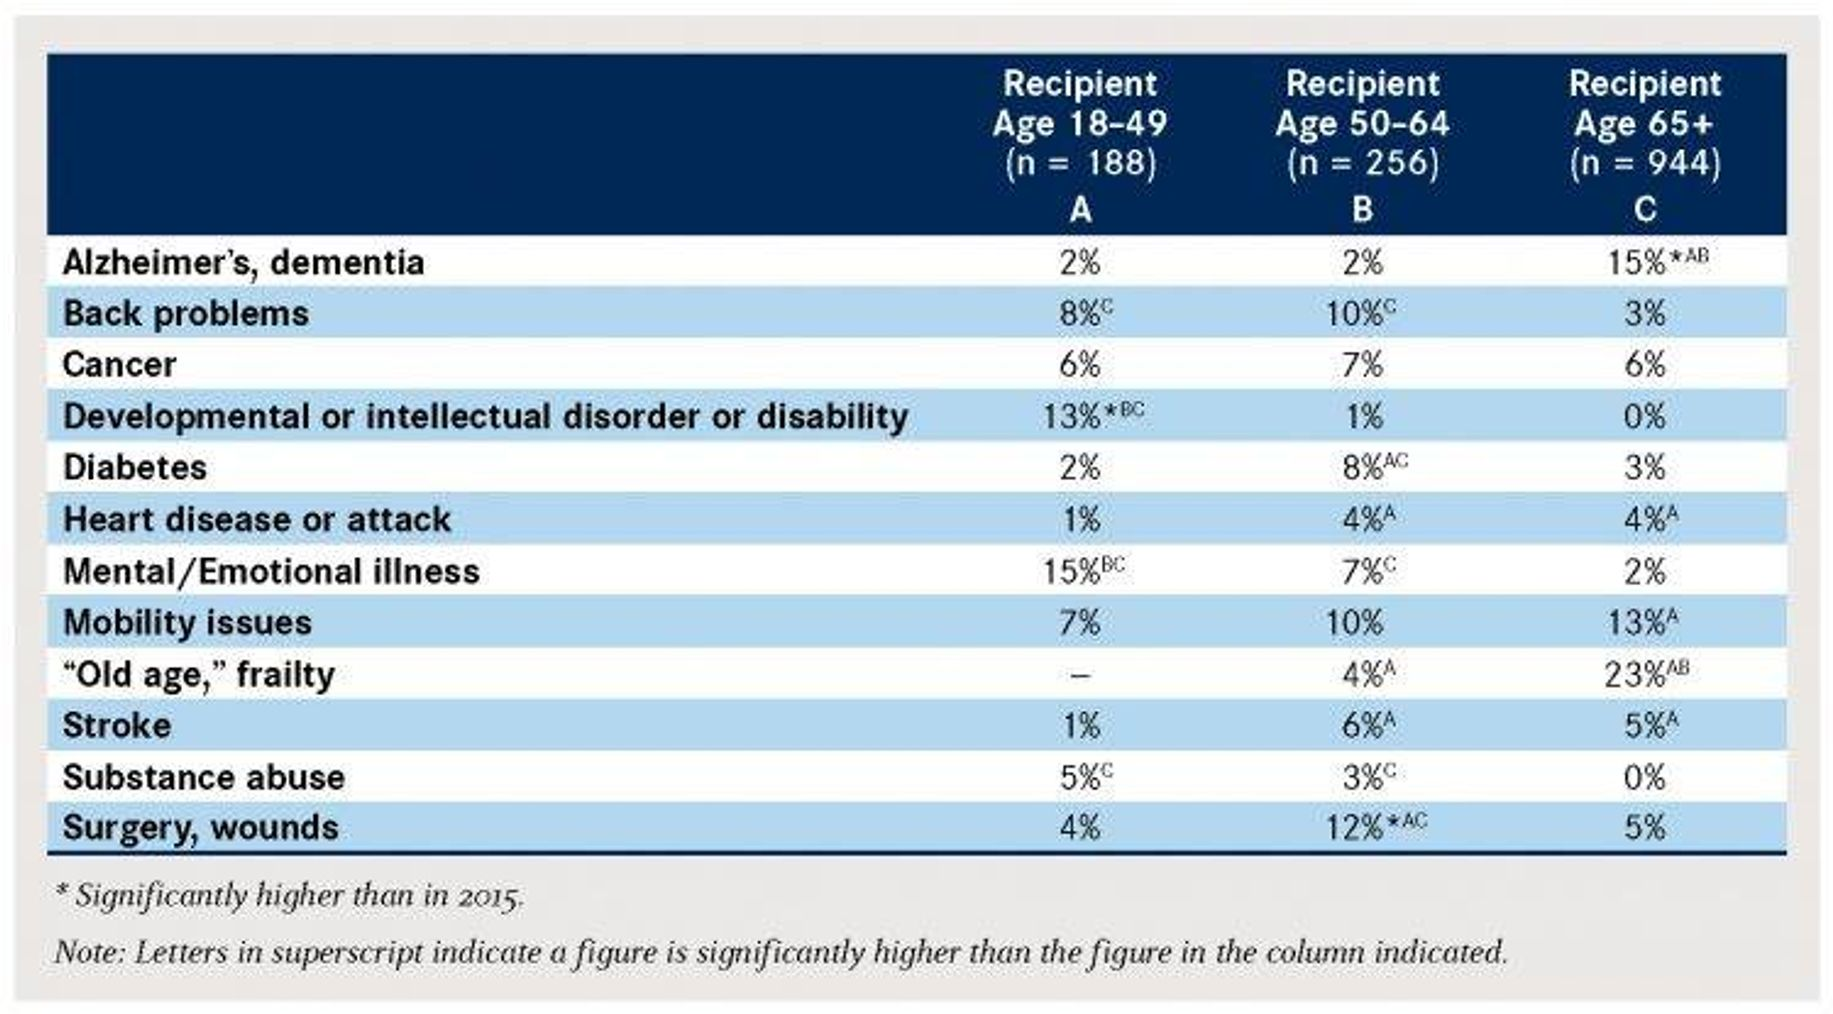 Selected Main Problems of Illness by Care Recipient